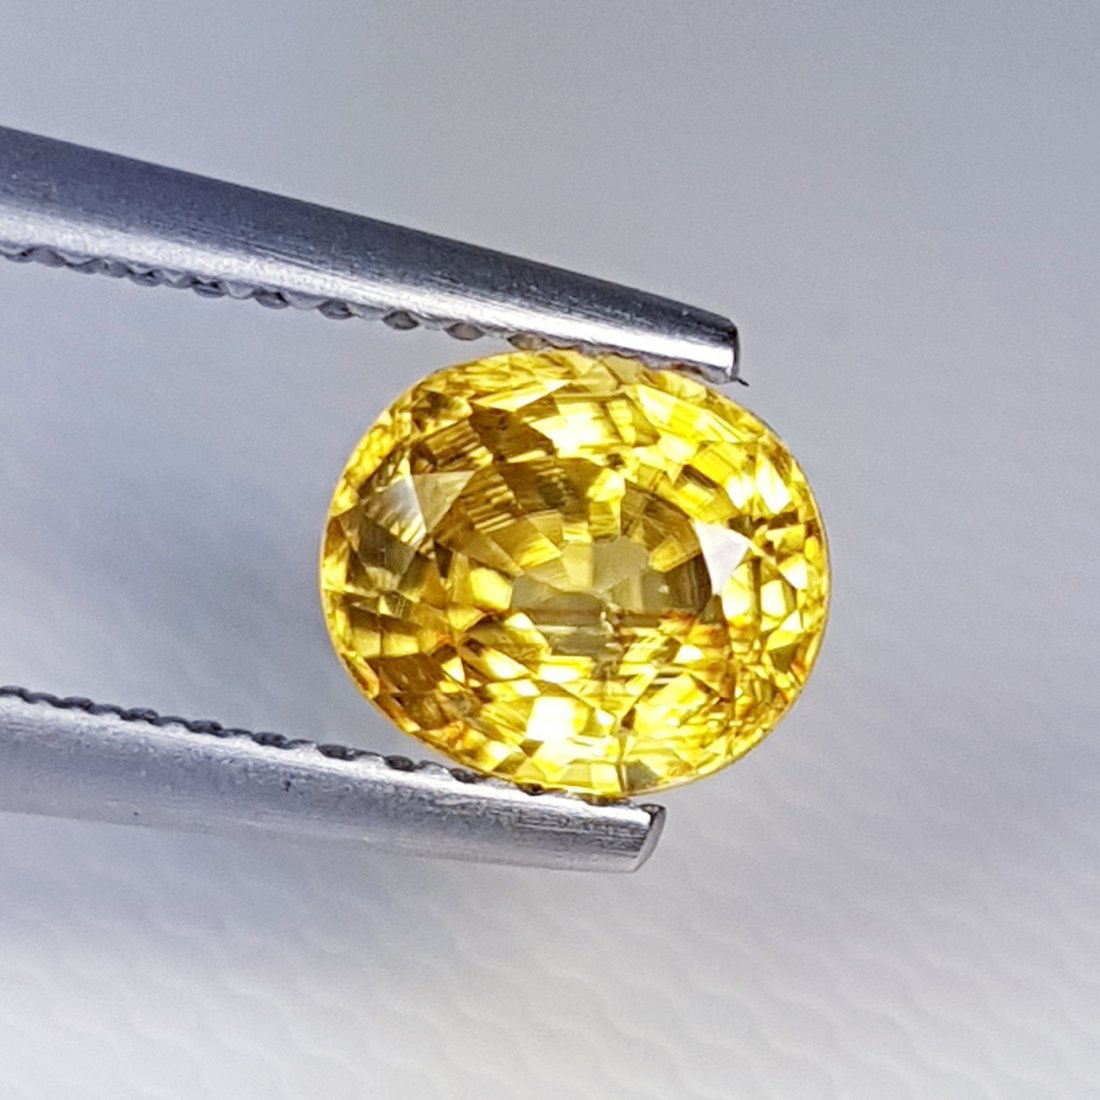 Natural Golden Yellow Zircon - 1.68 ct